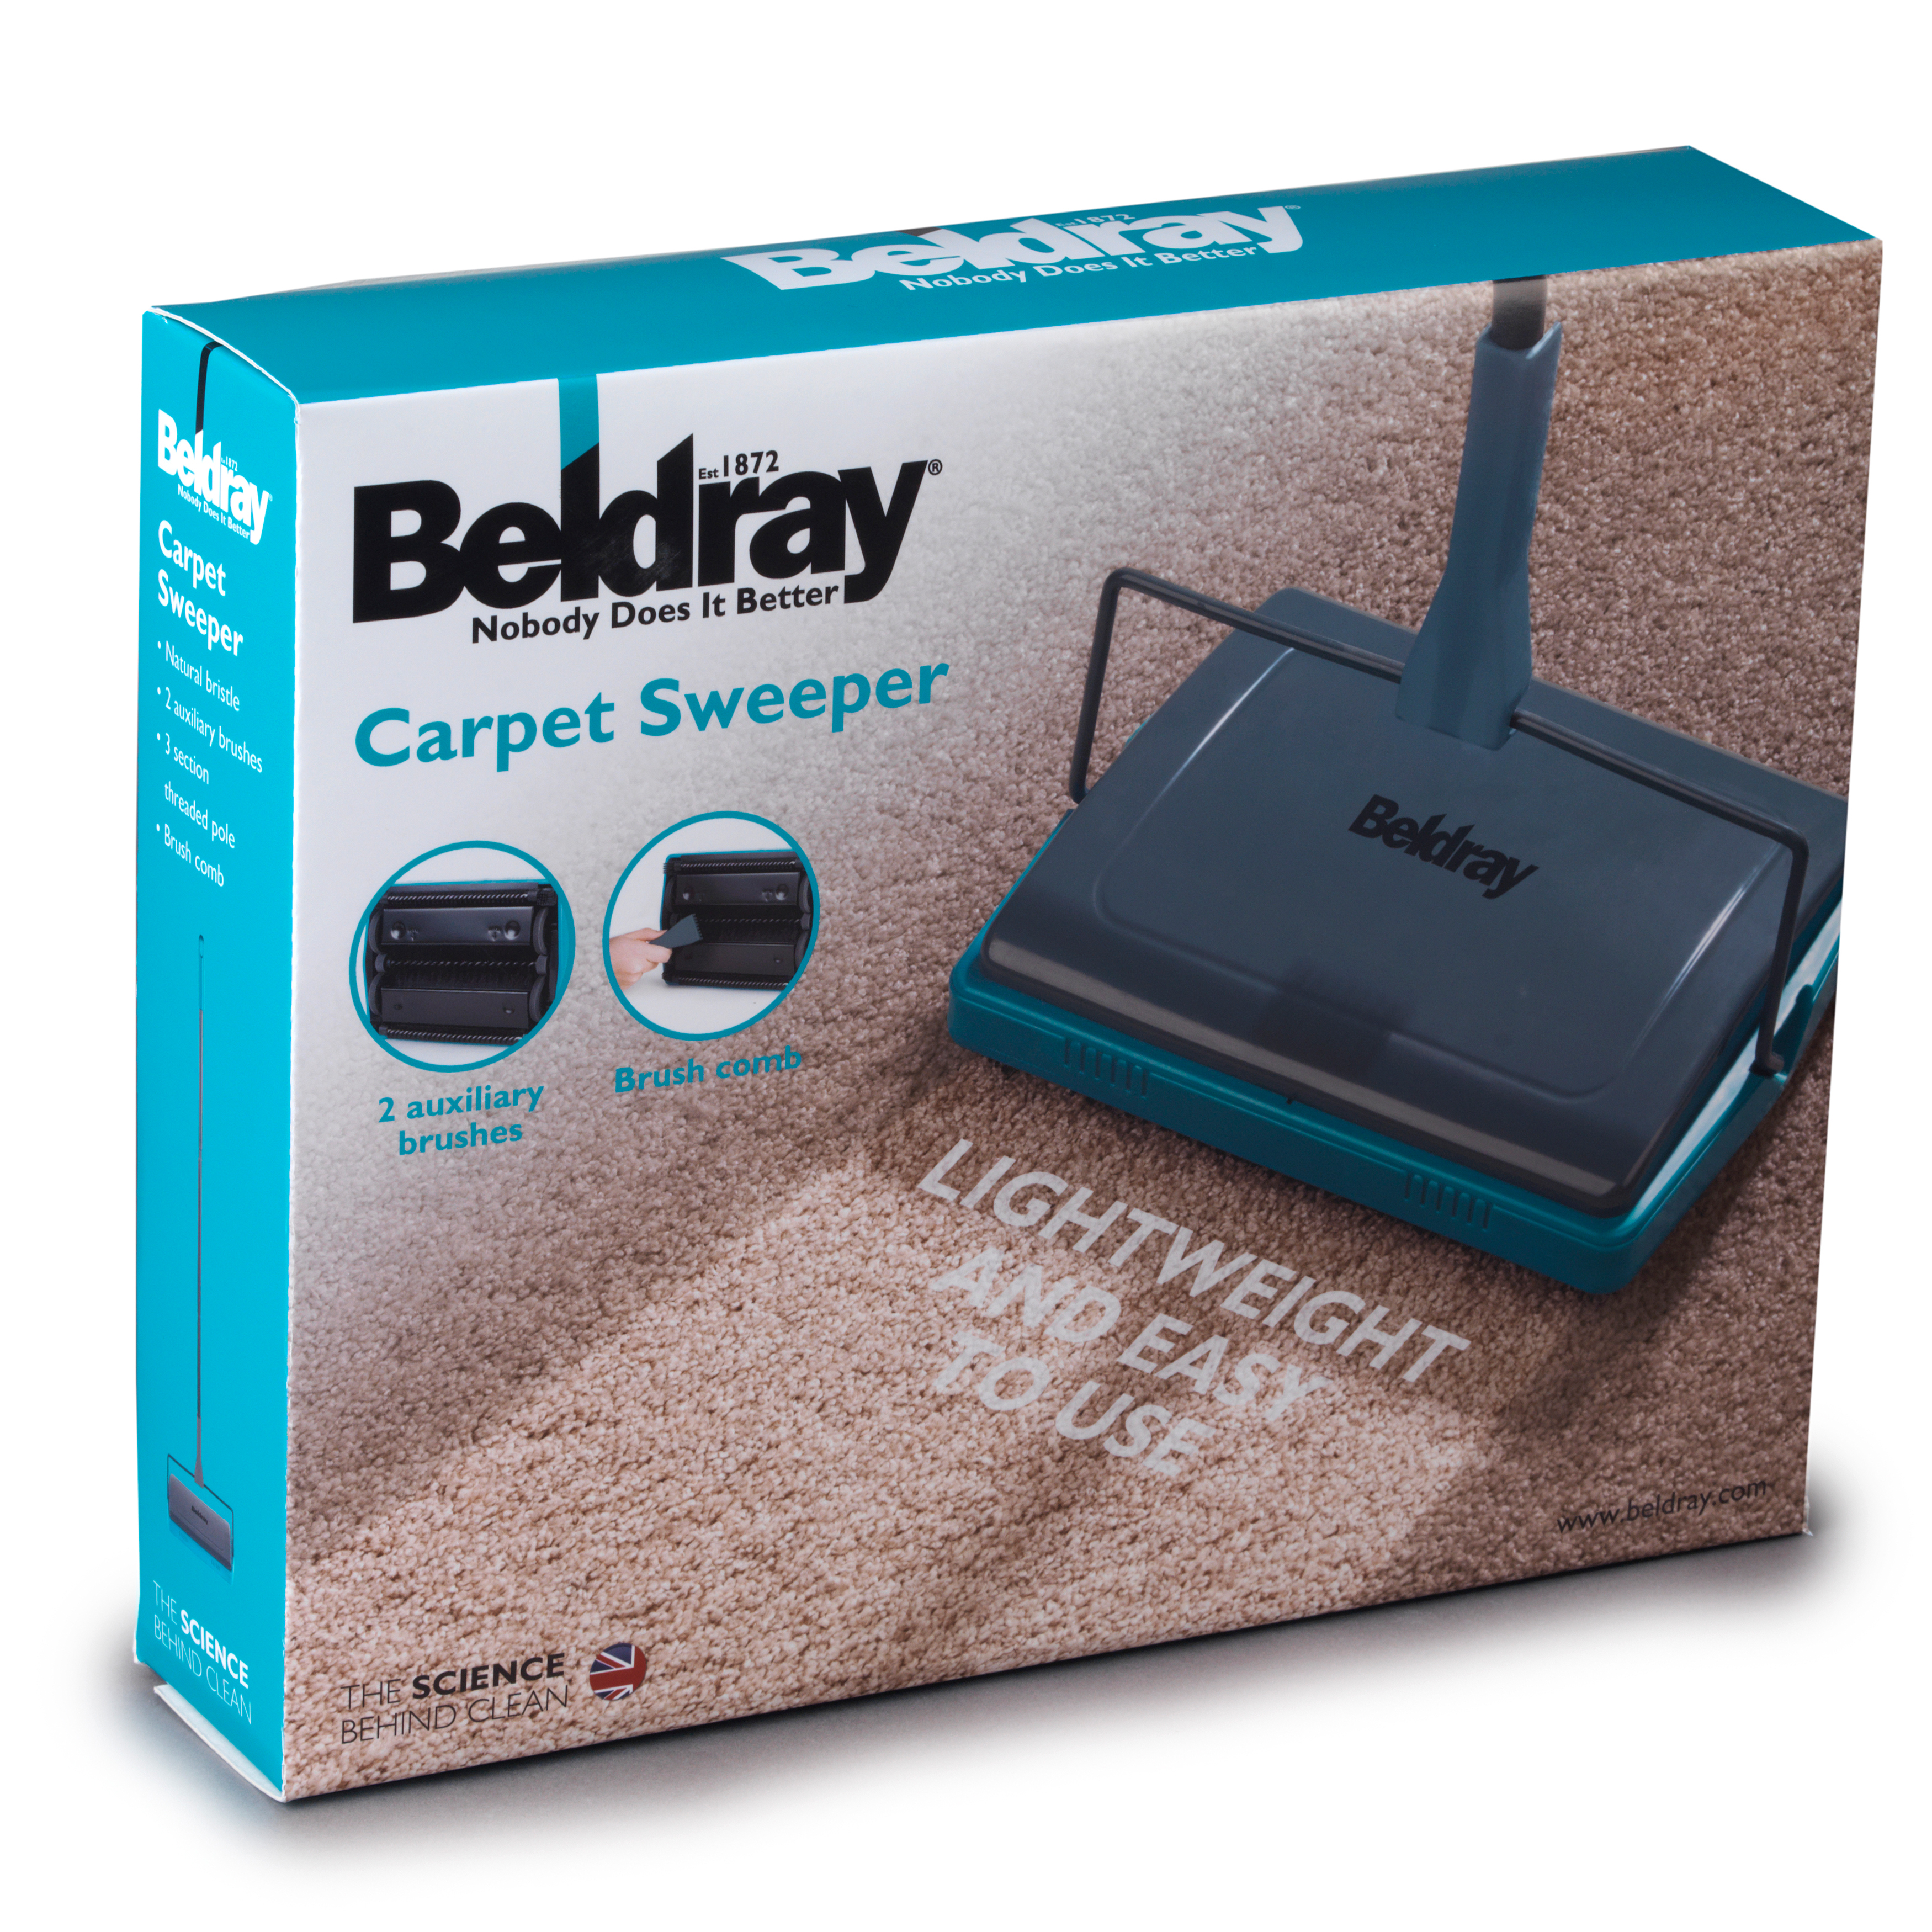 beldray turquoise carpet sweeper - Carpet Sweeper